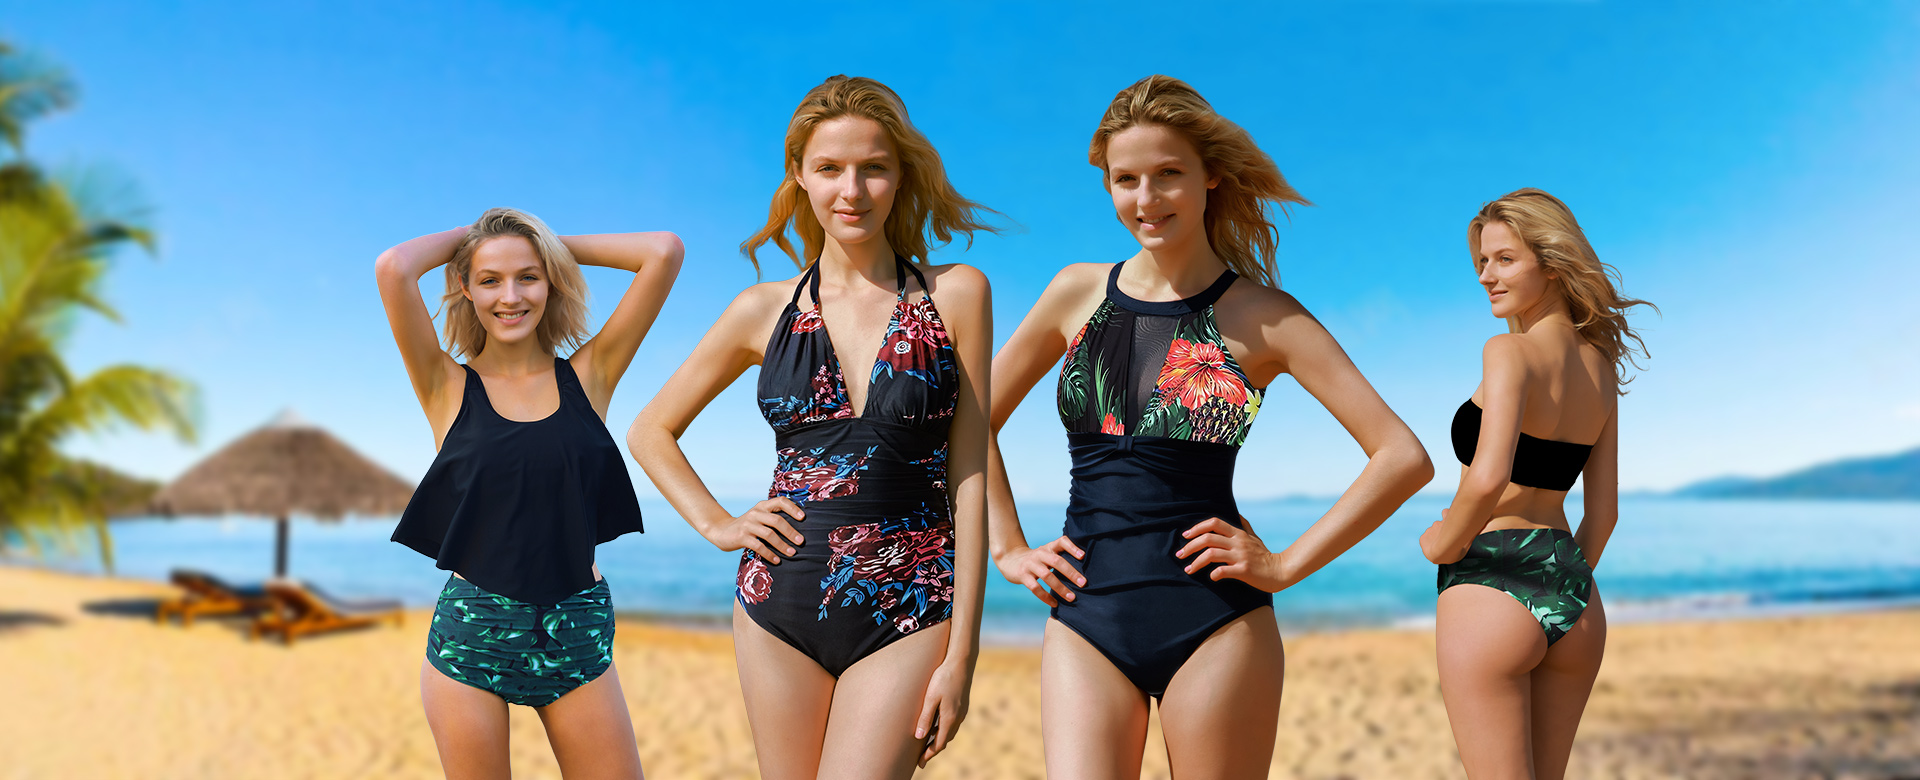 BEST SWIMSUITS FOR YOUR BEACH TIME